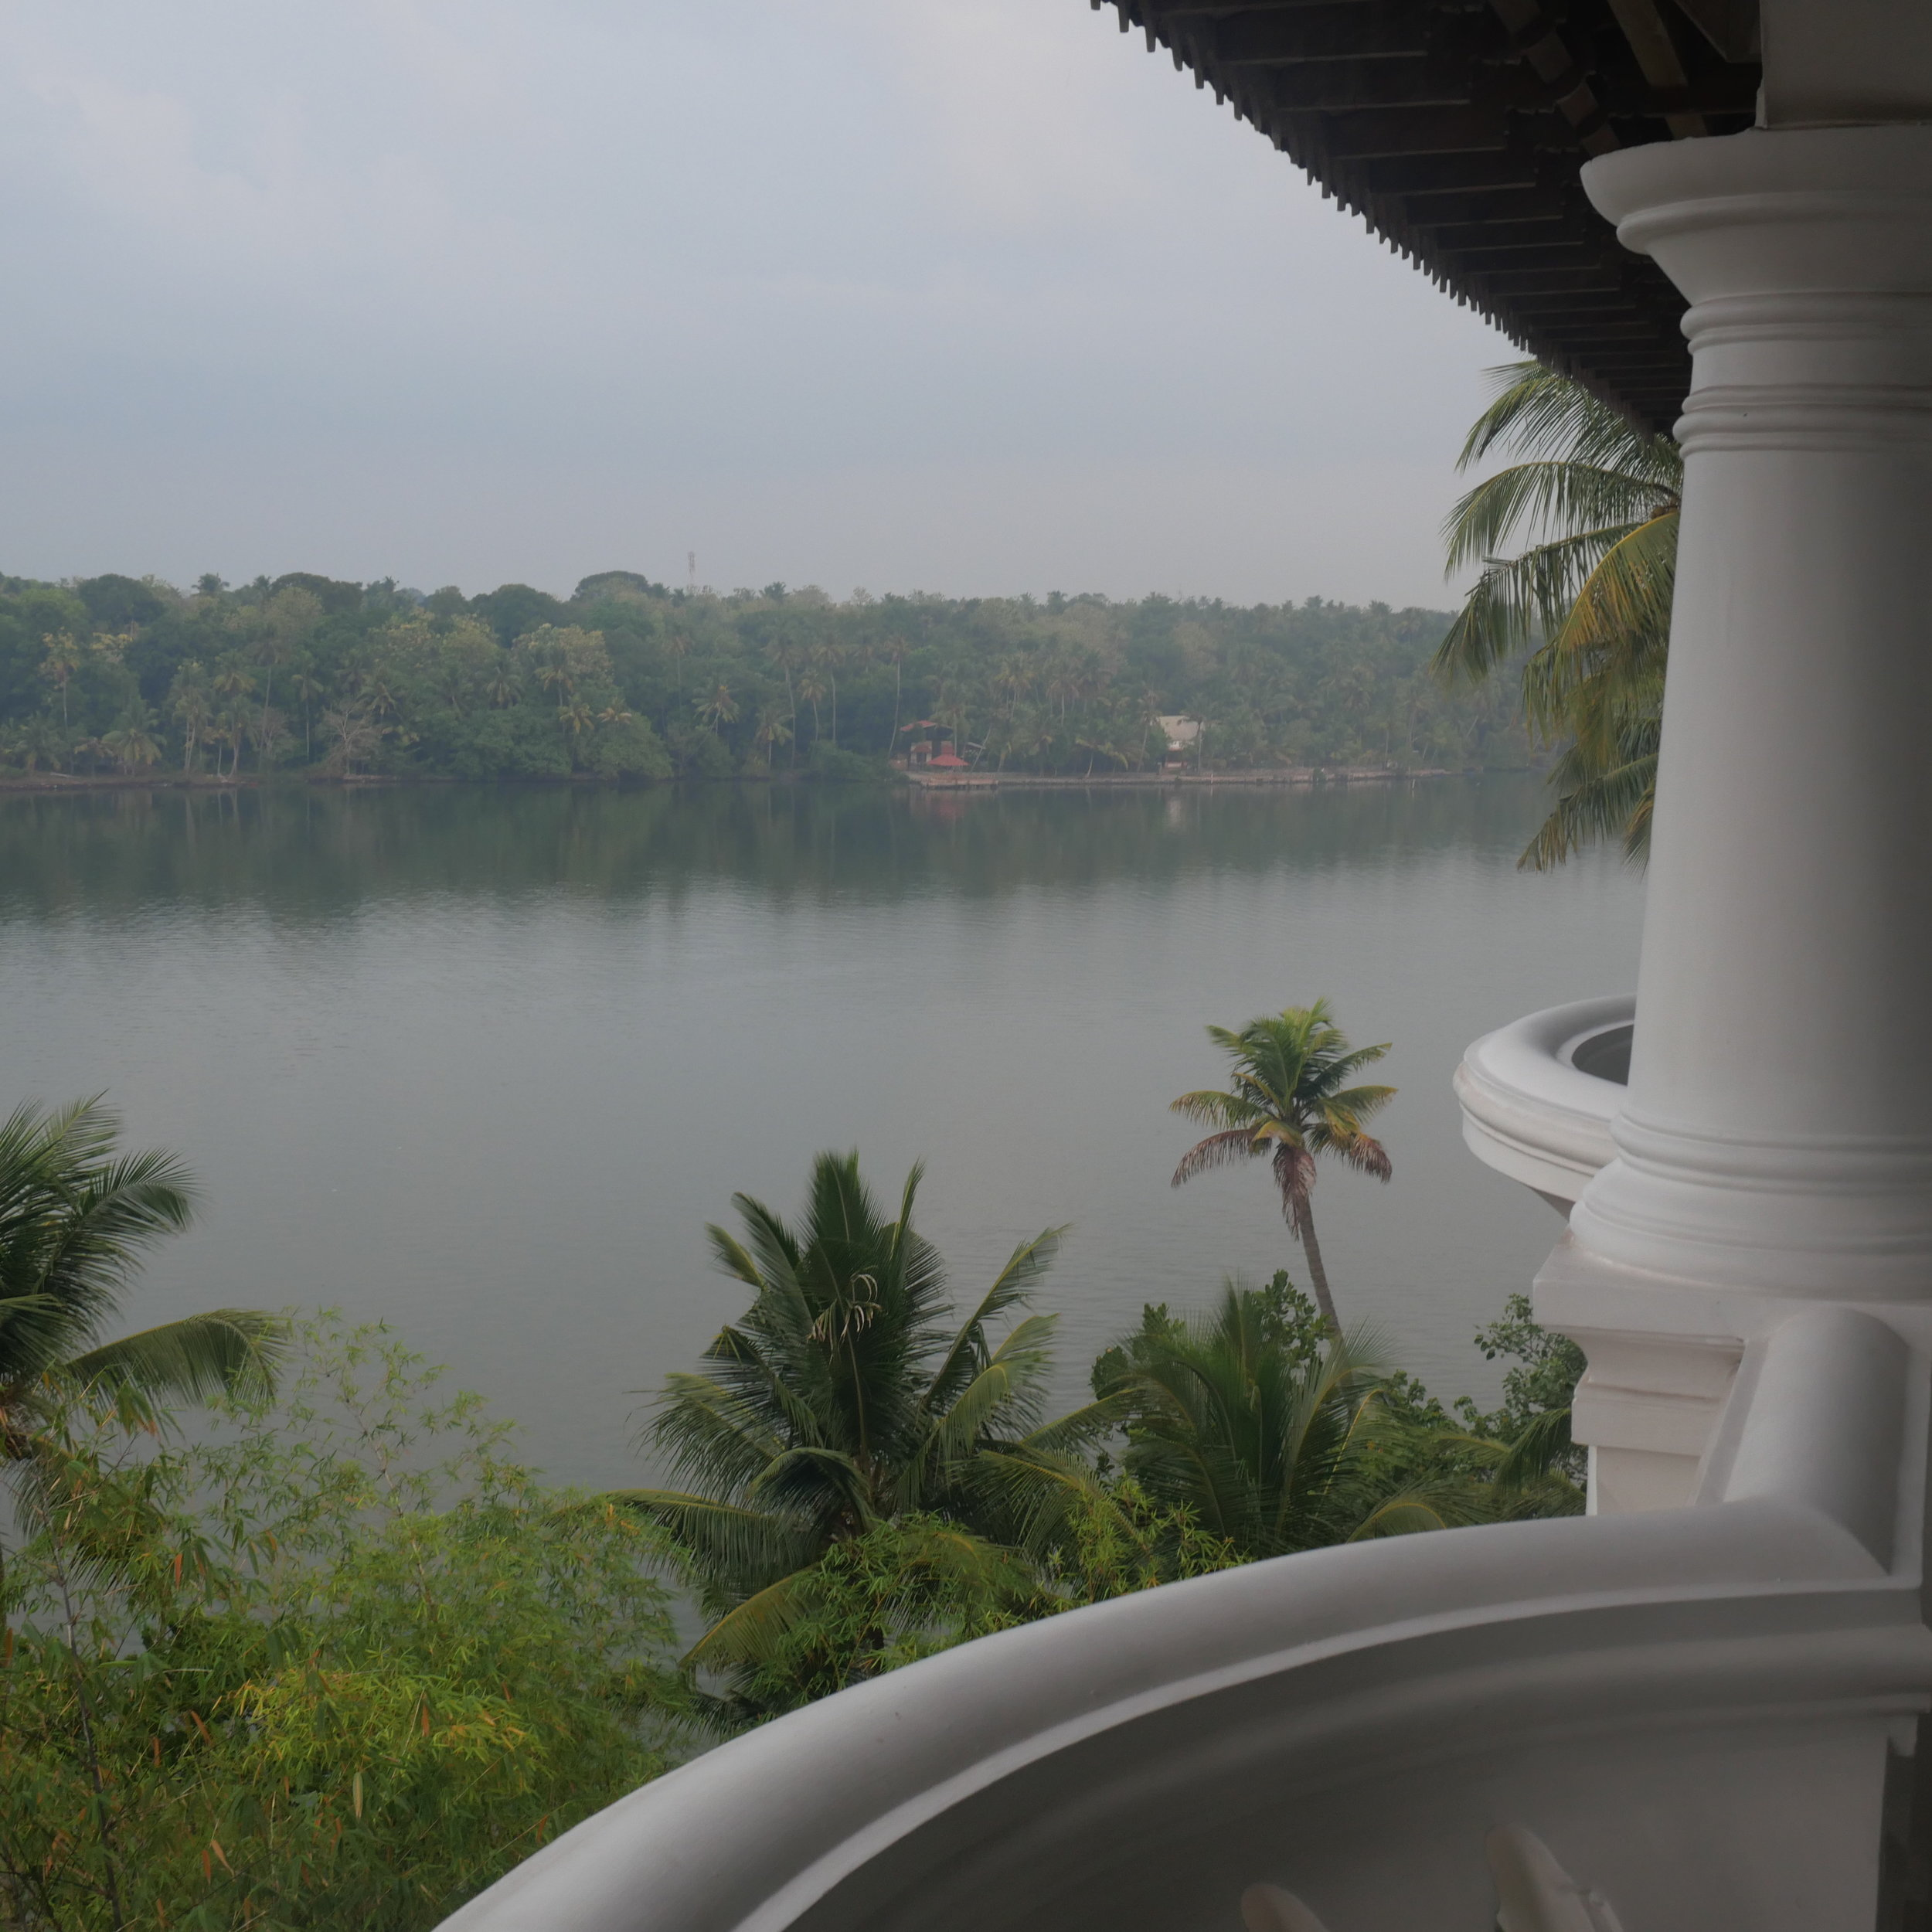 The beautiful views at Raviz Resort. Get a lake view room for gorgeous sunset views!